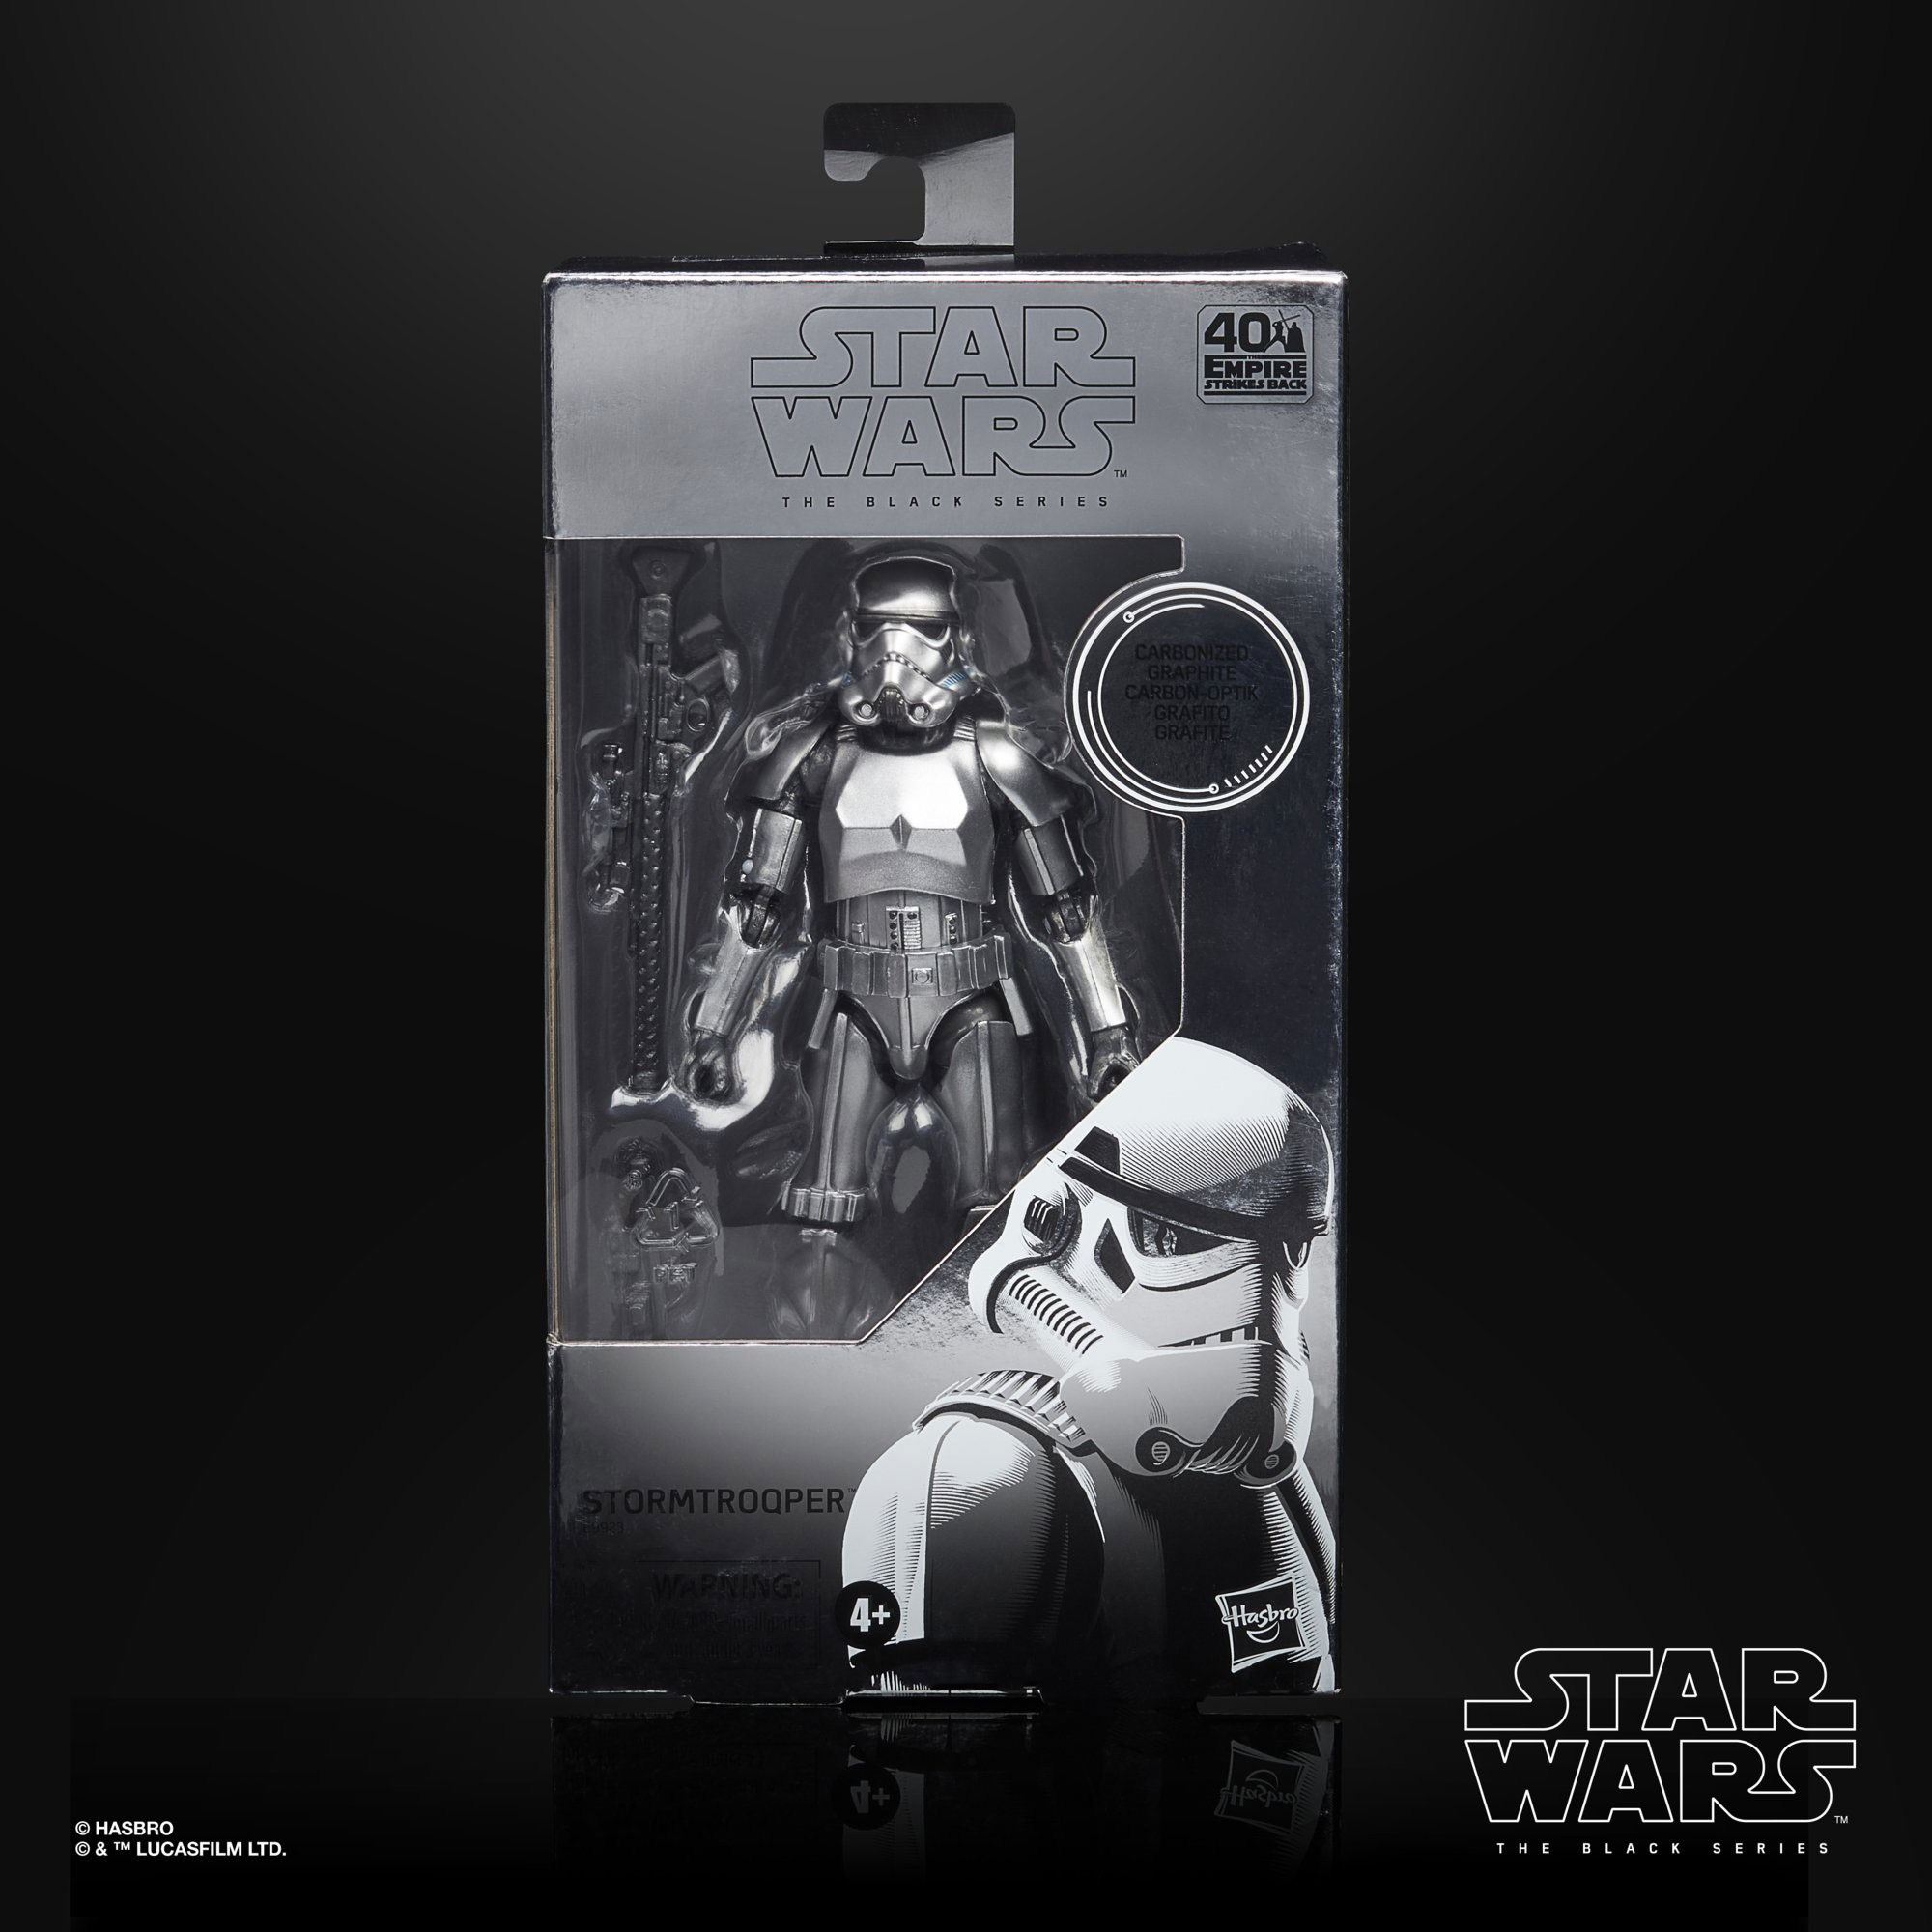 star-wars-black-series-carbonized-stormtrooper-action-figure-3